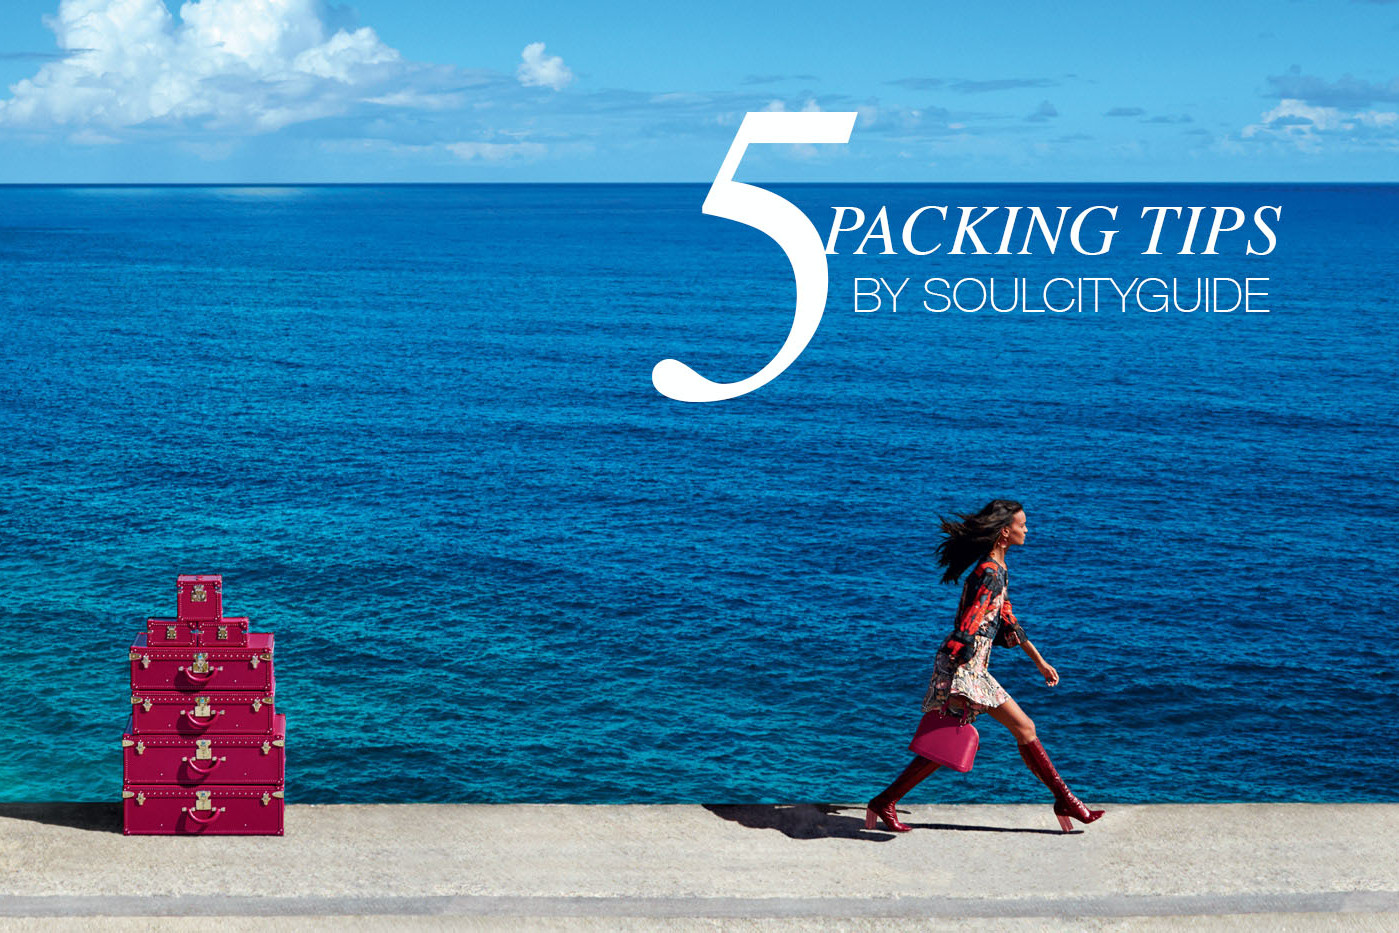 5 travel tips by soulcityguide